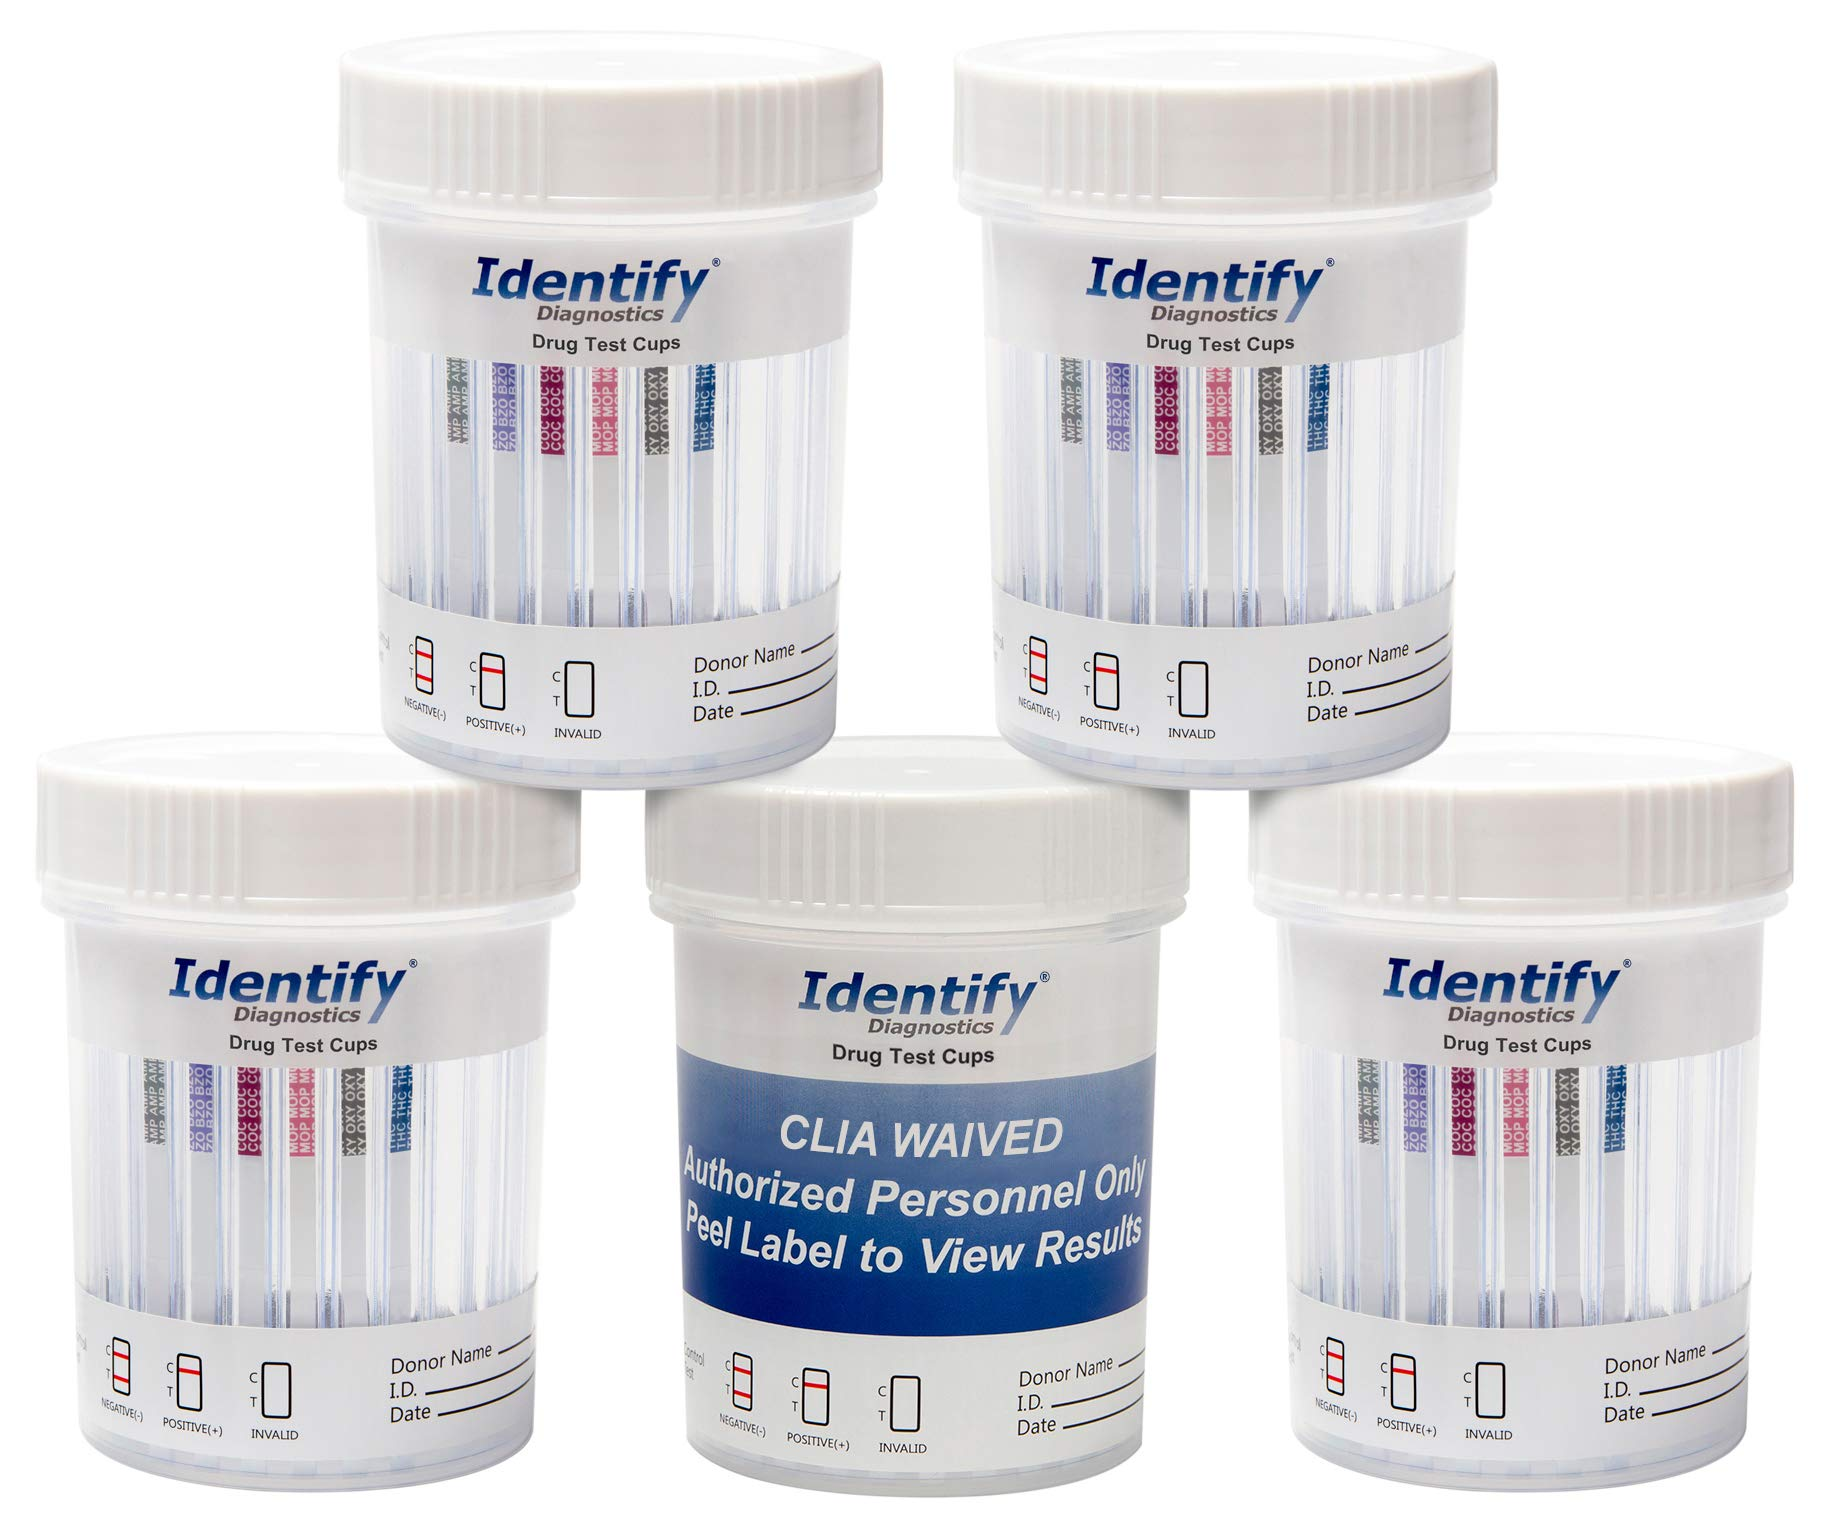 50 Pack Identify Diagnostics 6 Panel Drug Test Cup Testing Instantly for 6 Different Drugs: (THC), (OXY), (MOP), (COC), (BZO), (AMP) #ID-CP6